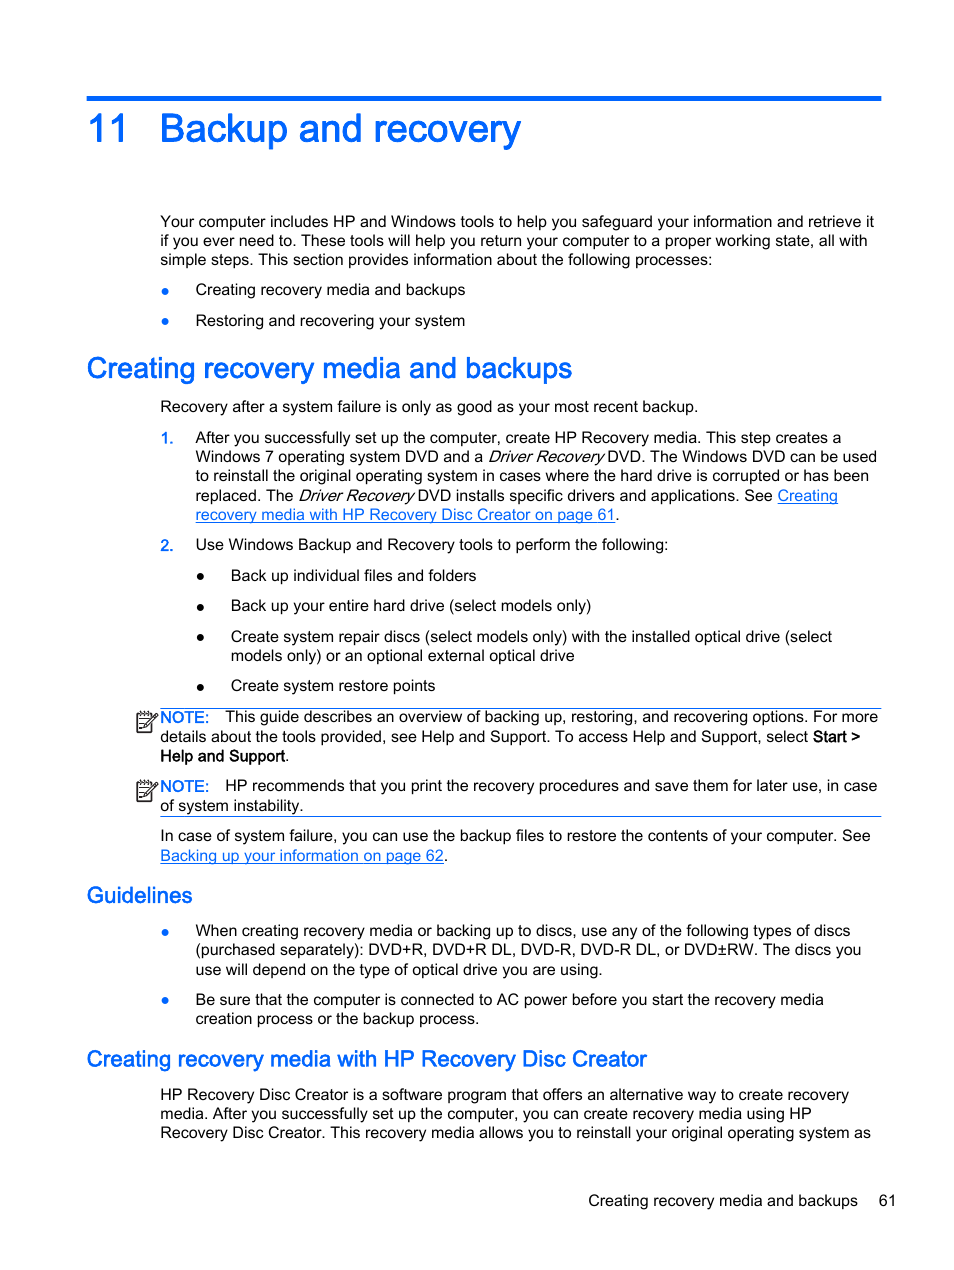 Backup and recovery, Creating recovery media and backups, Guidelines